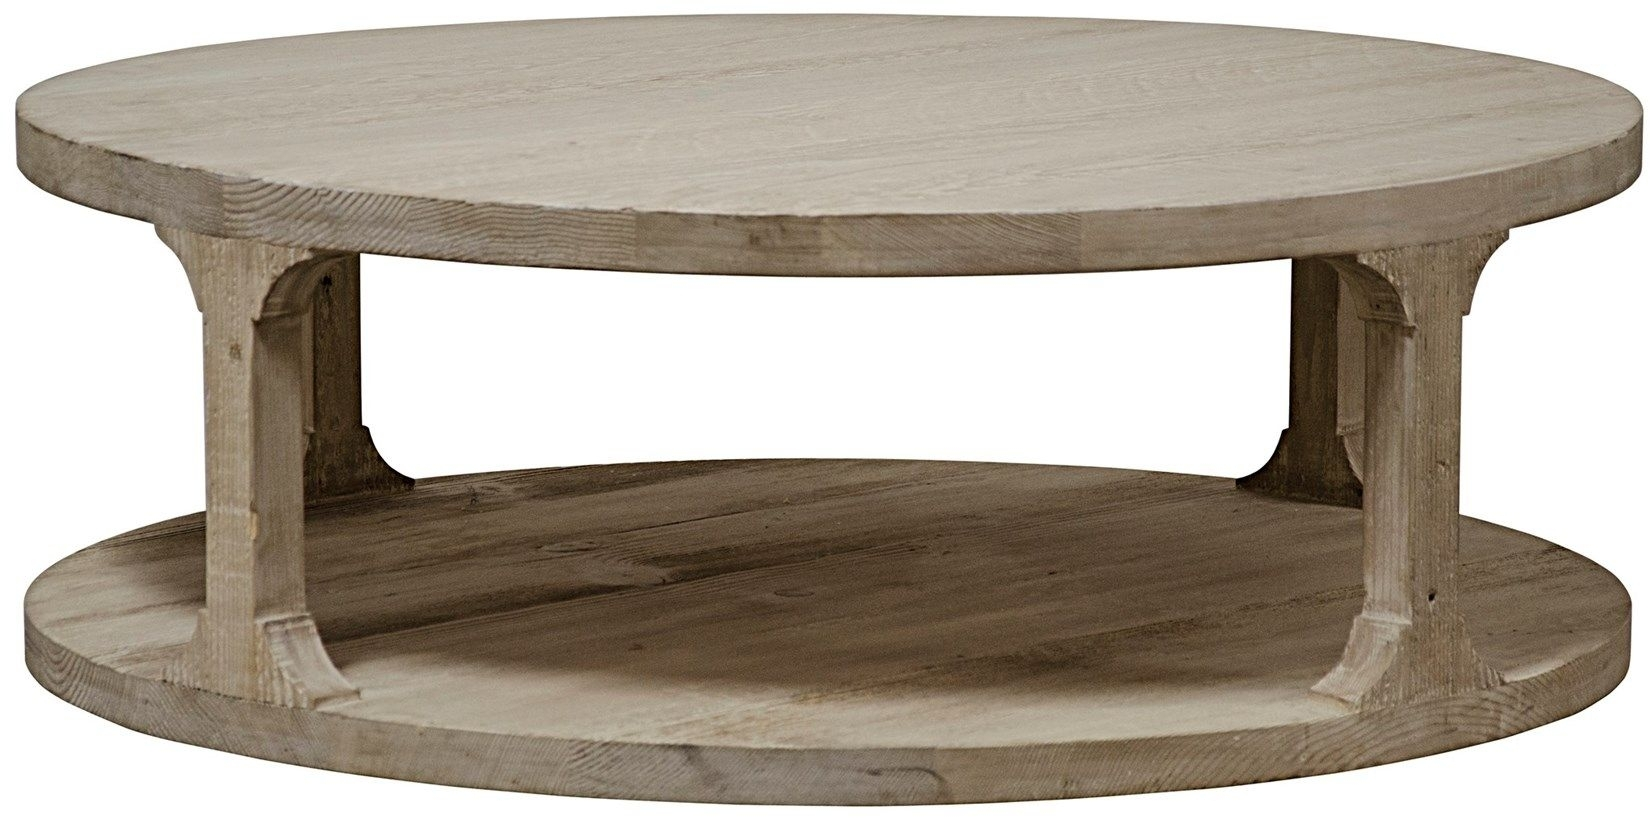 Cfc :: Gimso Round Coffee Table | Coffee Tables | Pinterest | Room intended for Oslo Burl Wood Veneer Coffee Tables (Image 16 of 30)